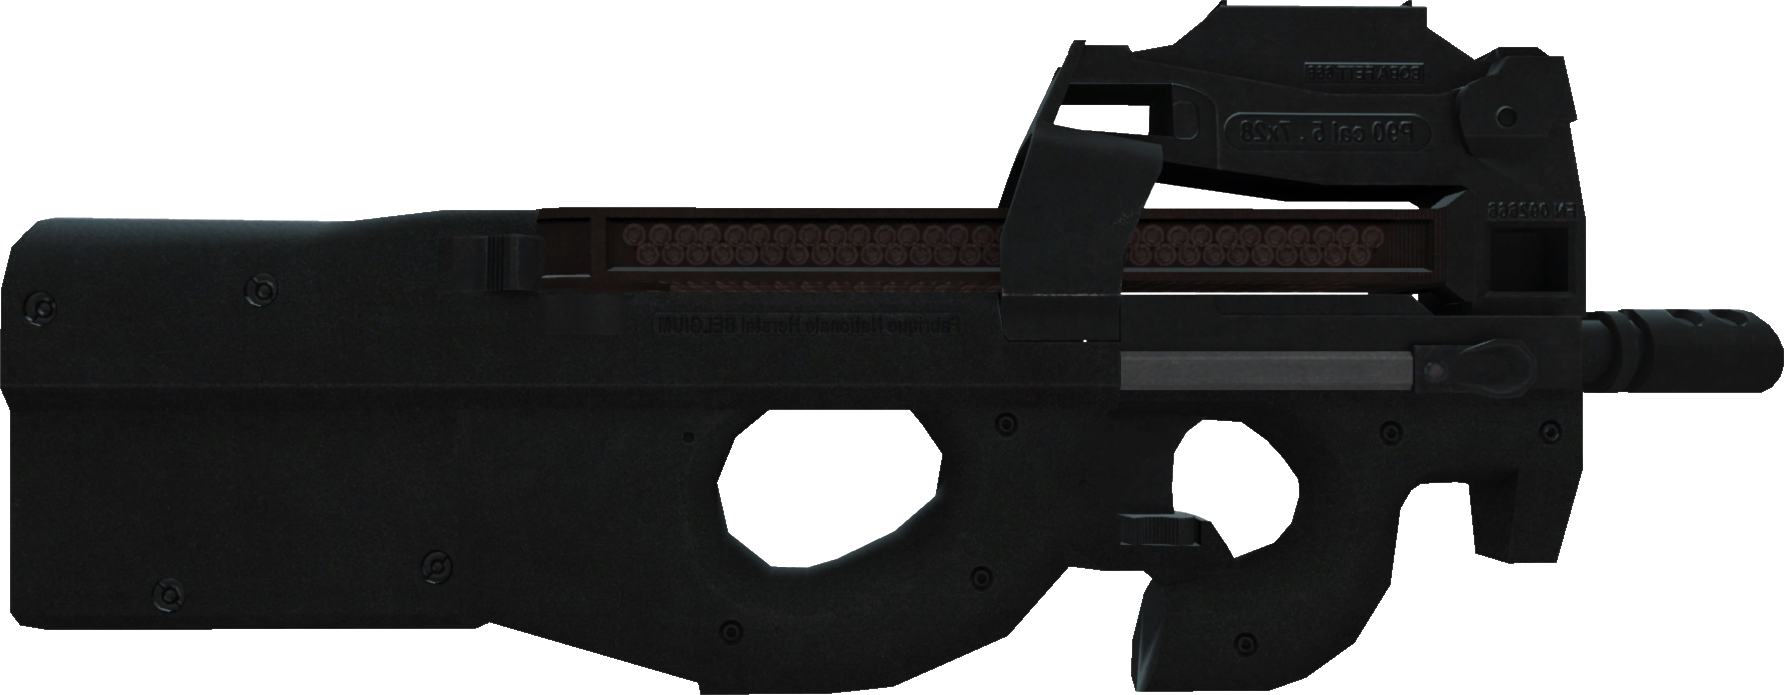 P90 clip real. Image zewikia weapon smg